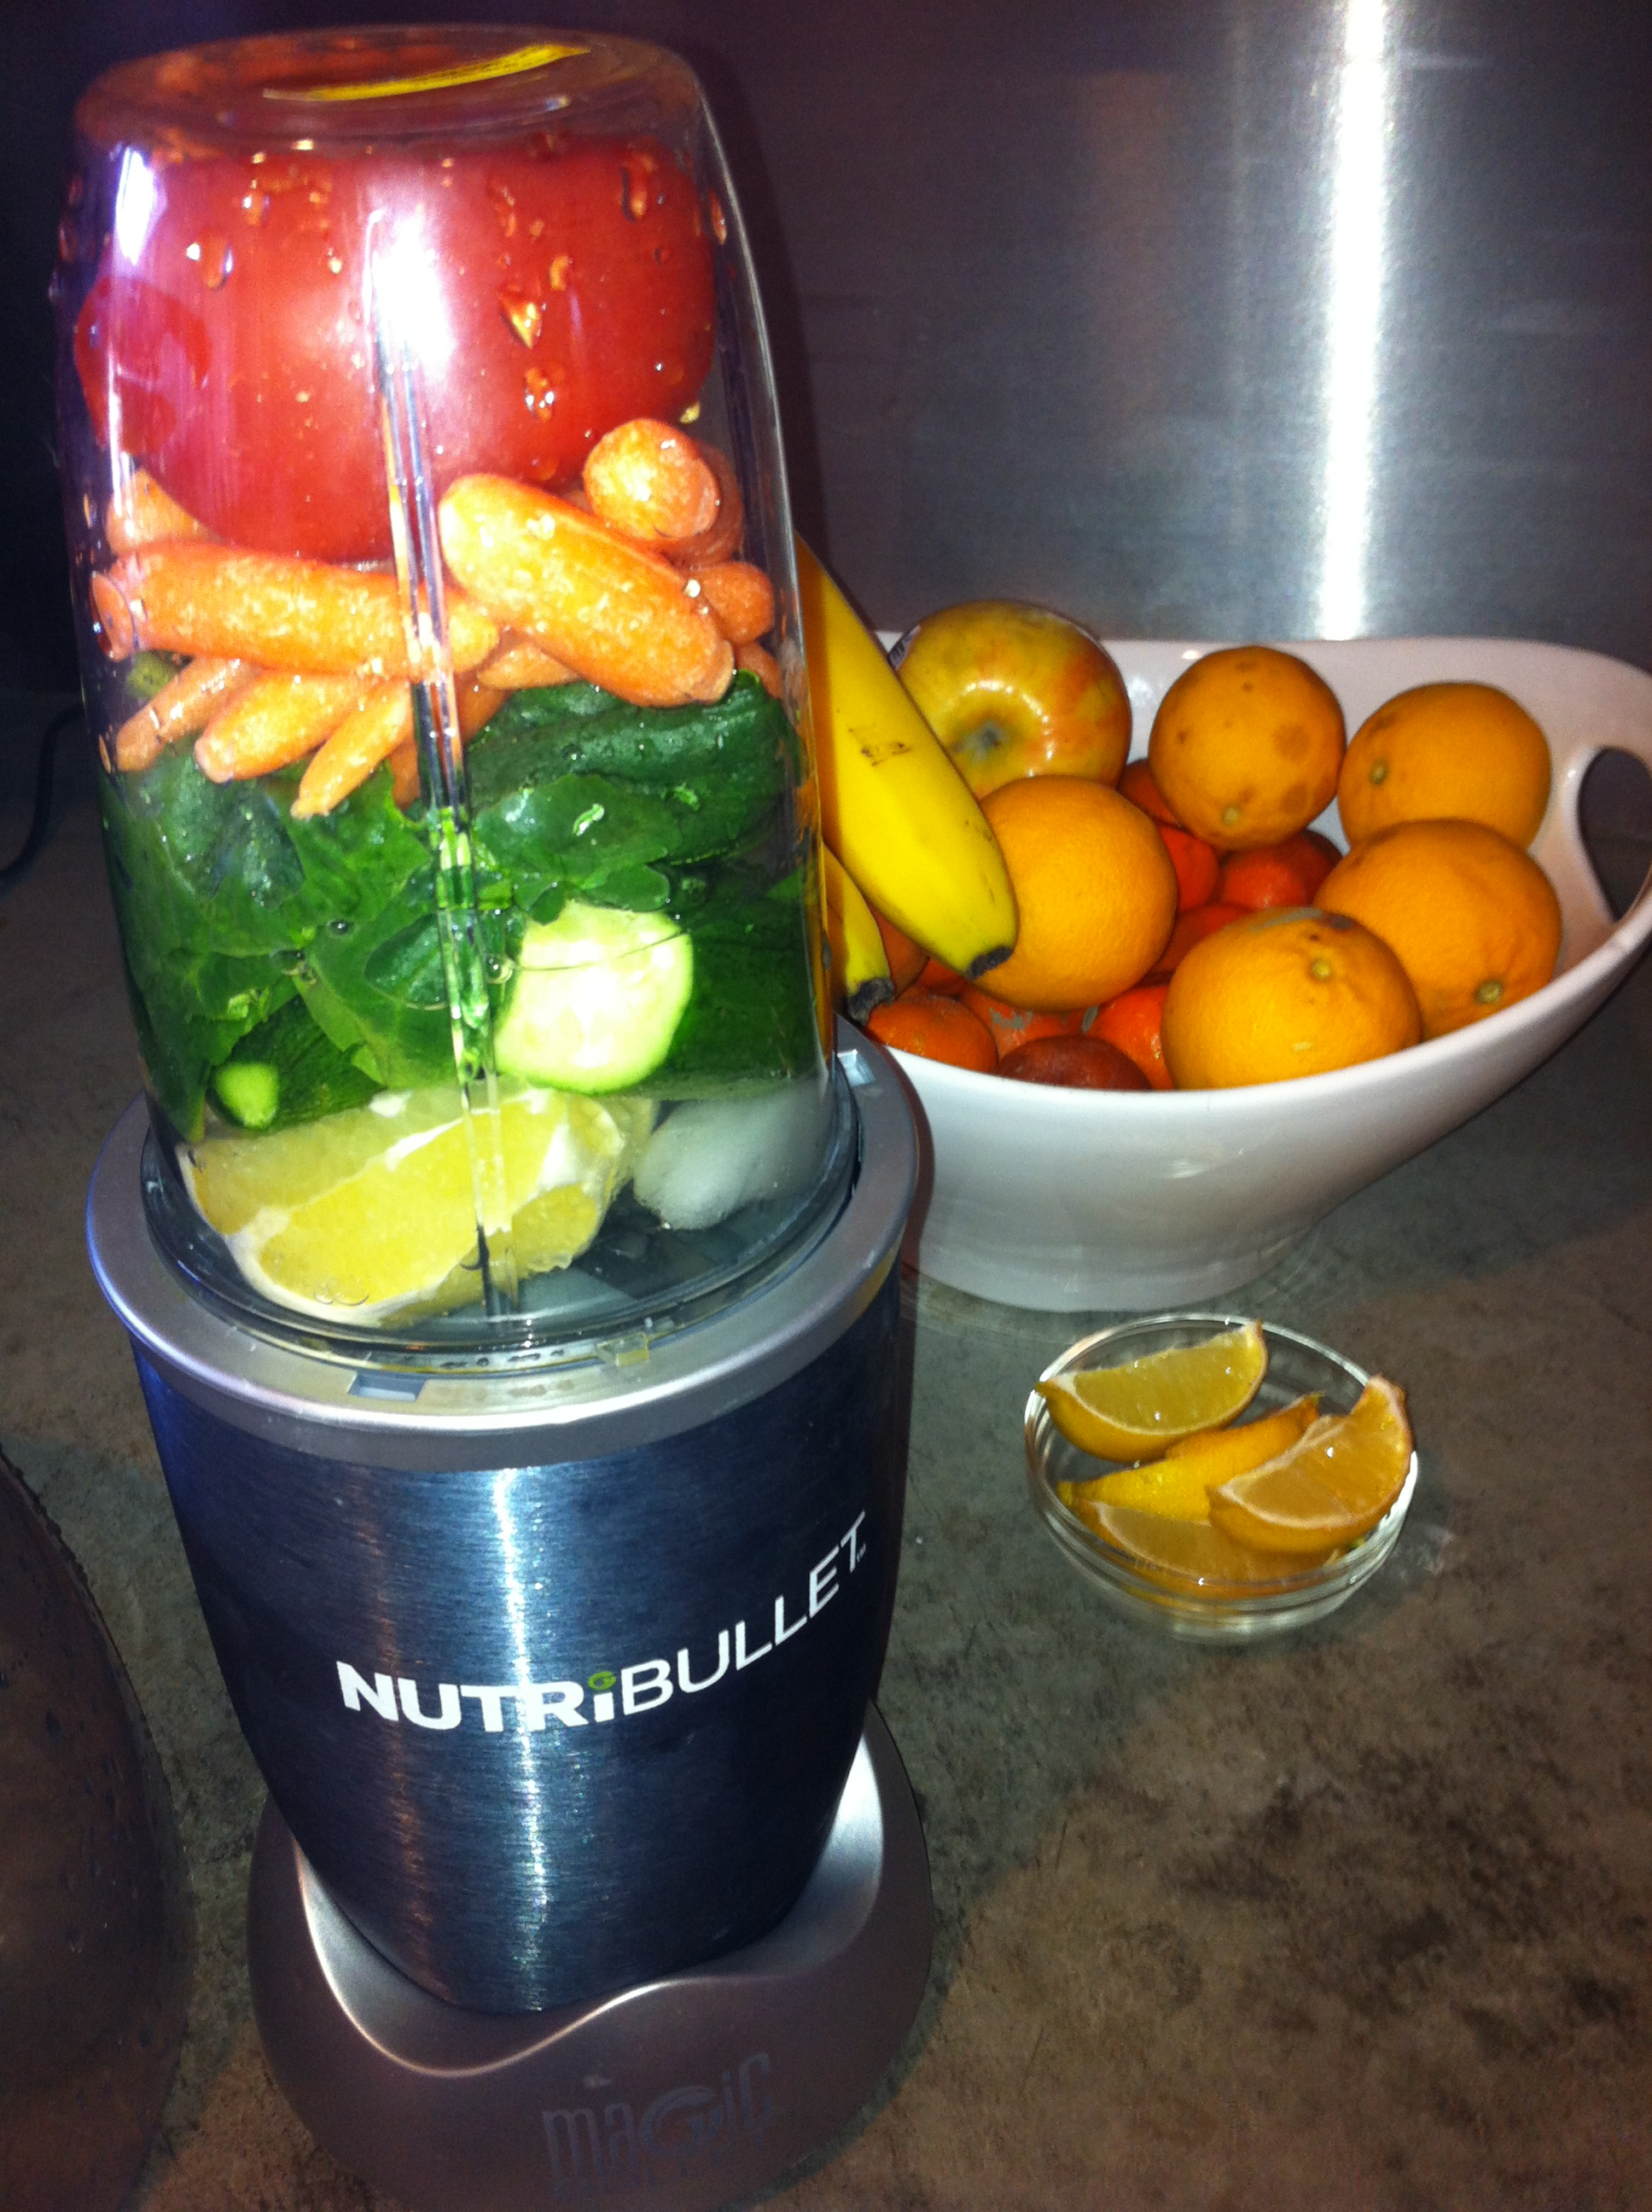 Nutribullet V8 Juice | Photo Girl Travels